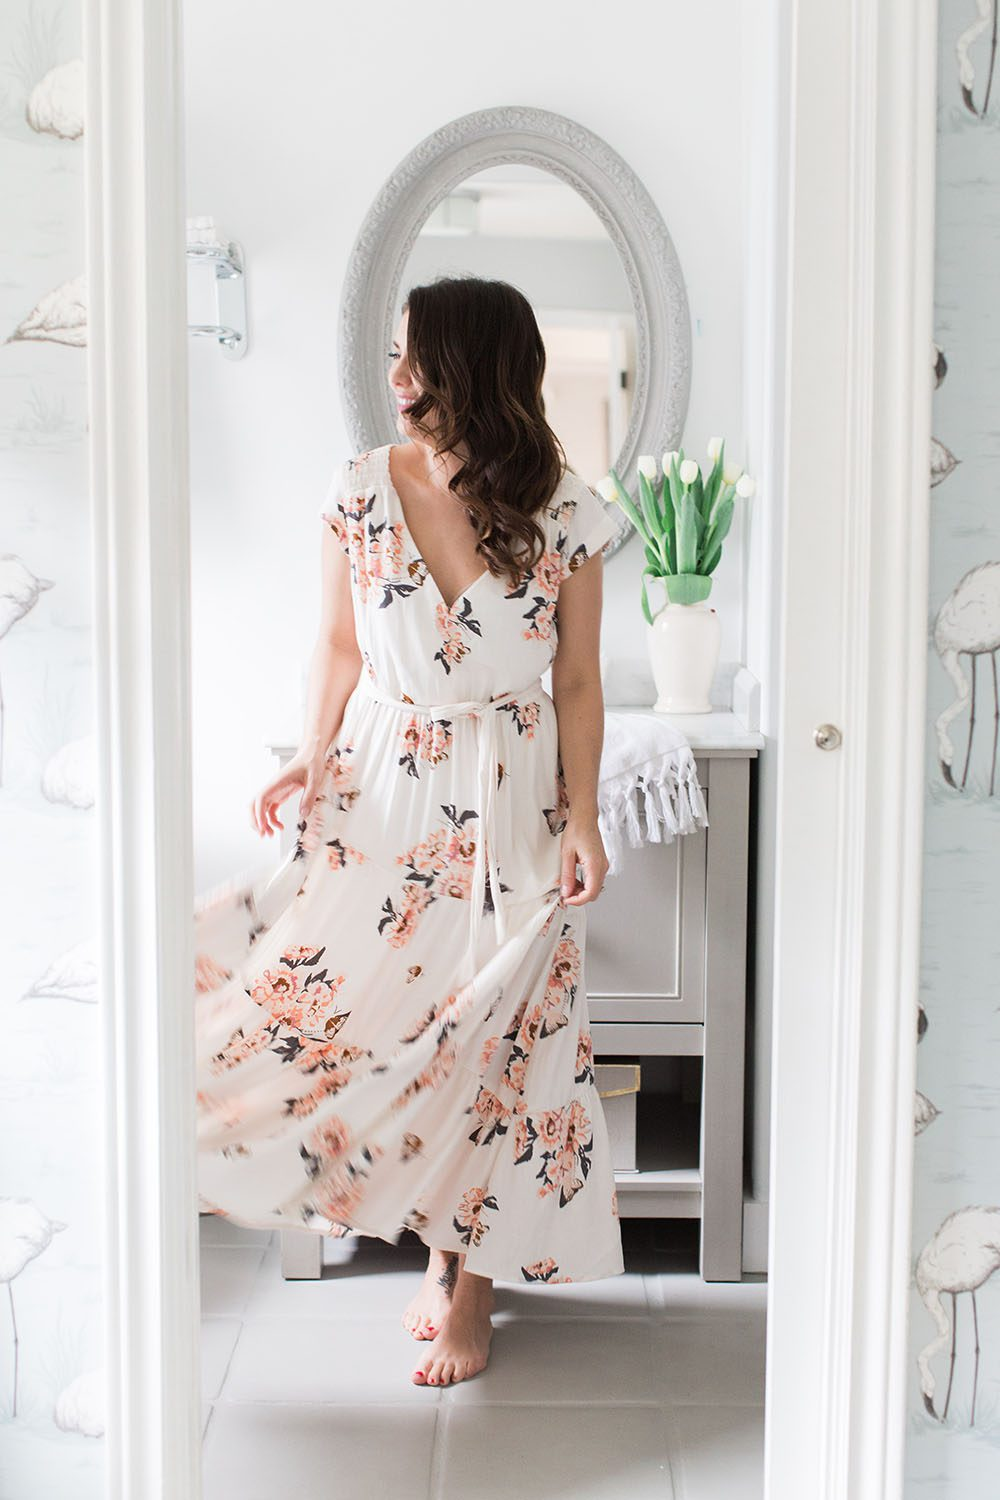 4 Ways to Style Your Maxi Dress